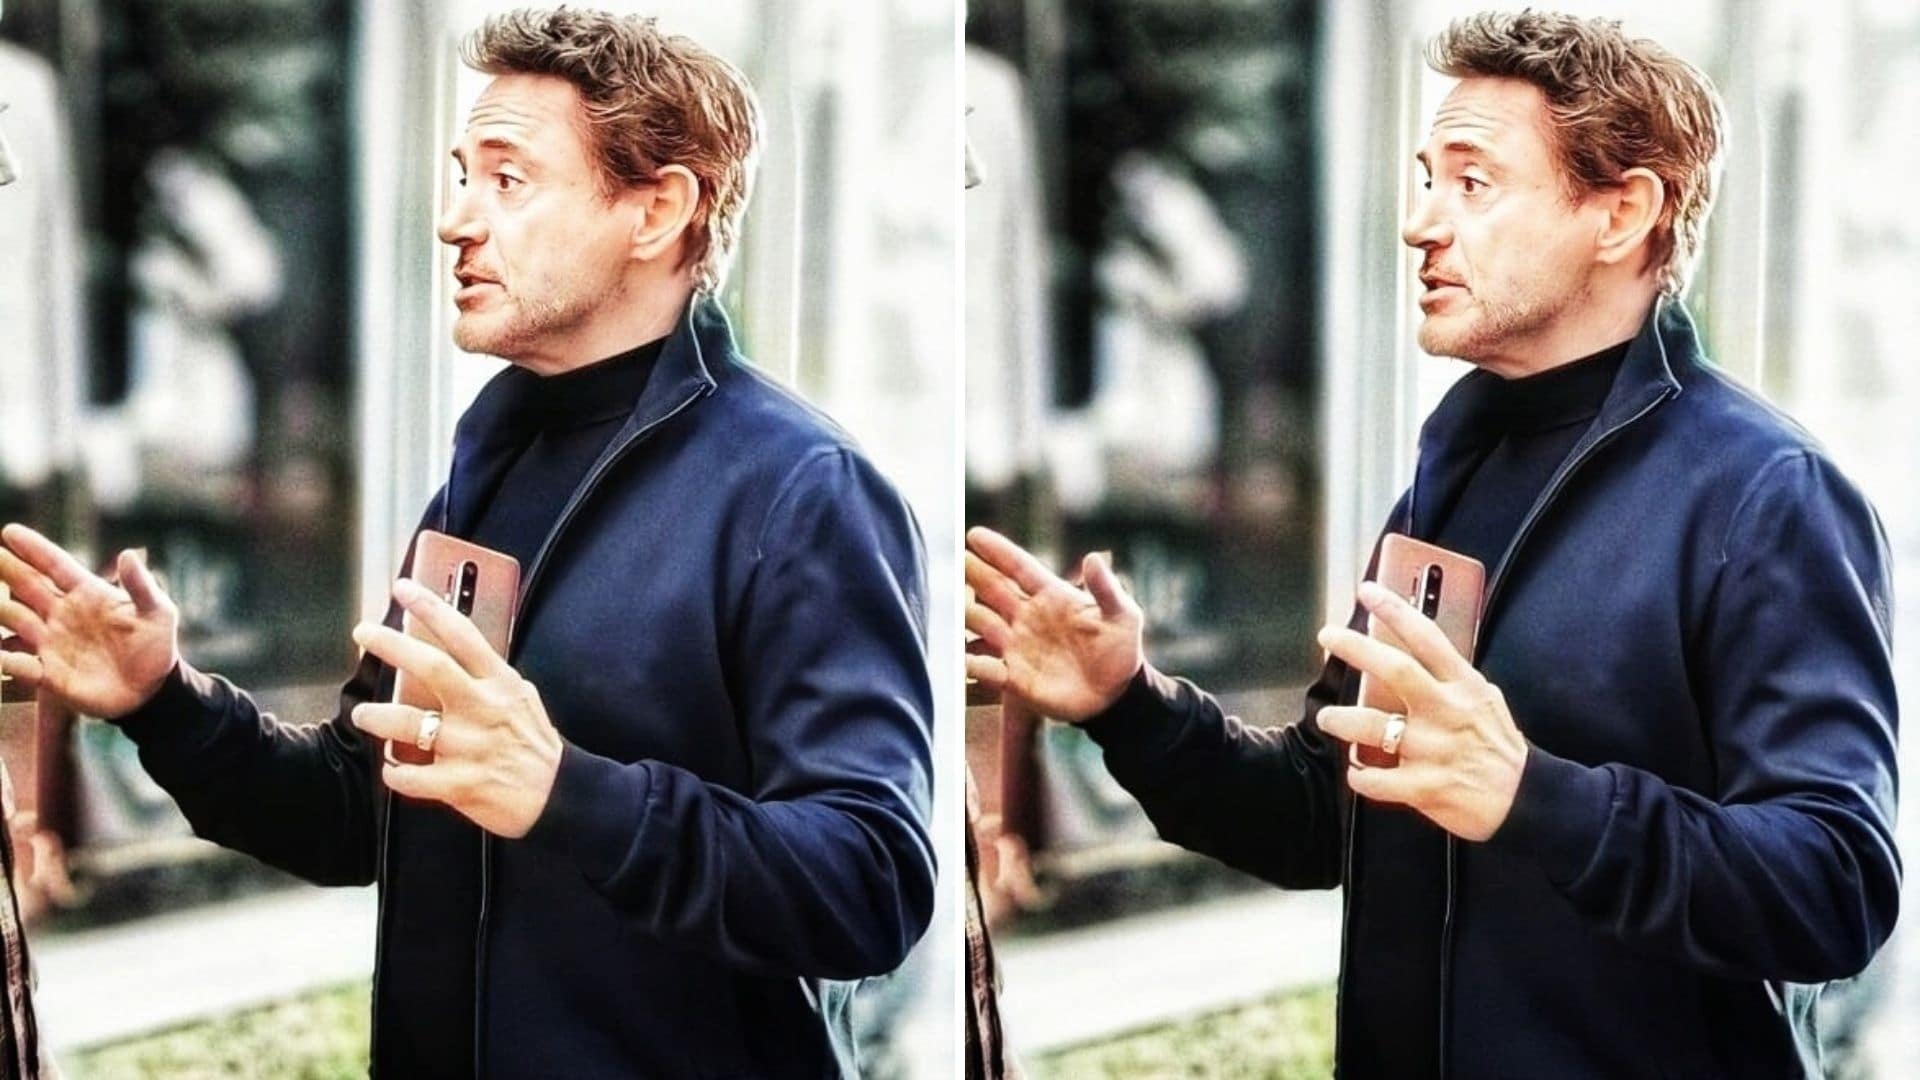 OnePlus 8 Pro May Just Have Been Spotted in Brand Ambassador Robert Downey Jr.'s Hand